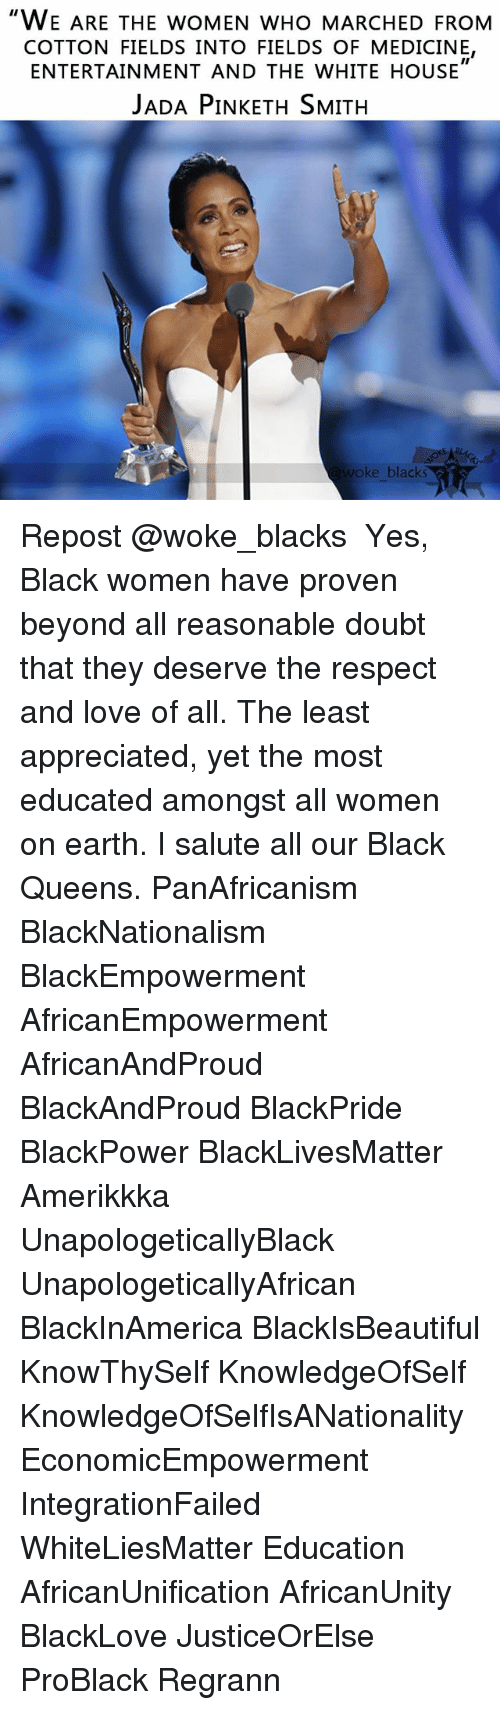 """Black Lives Matter, Love, and Memes: """"WE ARE THE woMEN wHo MARCHED FROM  COTTON FIELDS INTO FIELDS OF MEDICINE,  II  ENTERTAINMENT AND THE WHITE HOUSE  JADA PINKETH SMITH  woke blacks Repost @woke_blacks ・・・ Yes, Black women have proven beyond all reasonable doubt that they deserve the respect and love of all. The least appreciated, yet the most educated amongst all women on earth. I salute all our Black Queens. PanAfricanism BlackNationalism BlackEmpowerment AfricanEmpowerment AfricanAndProud BlackAndProud BlackPride BlackPower BlackLivesMatter Amerikkka UnapologeticallyBlack UnapologeticallyAfrican BlackInAmerica BlackIsBeautiful KnowThySelf KnowledgeOfSelf KnowledgeOfSelfIsANationality EconomicEmpowerment IntegrationFailed WhiteLiesMatter Education AfricanUnification AfricanUnity BlackLove JusticeOrElse ProBlack Regrann"""